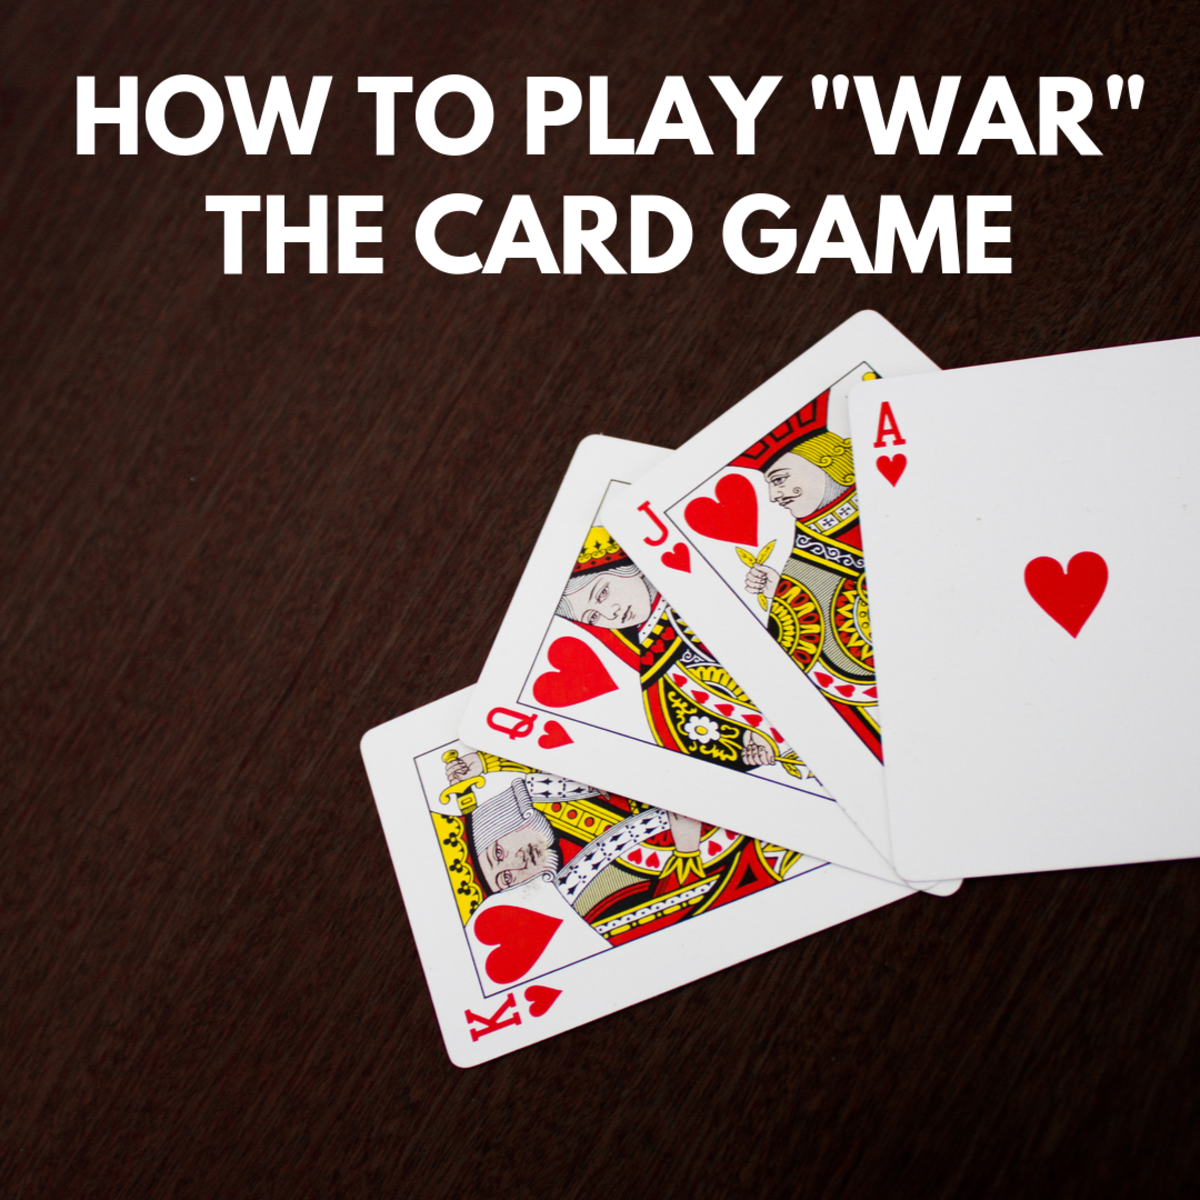 How to Play the